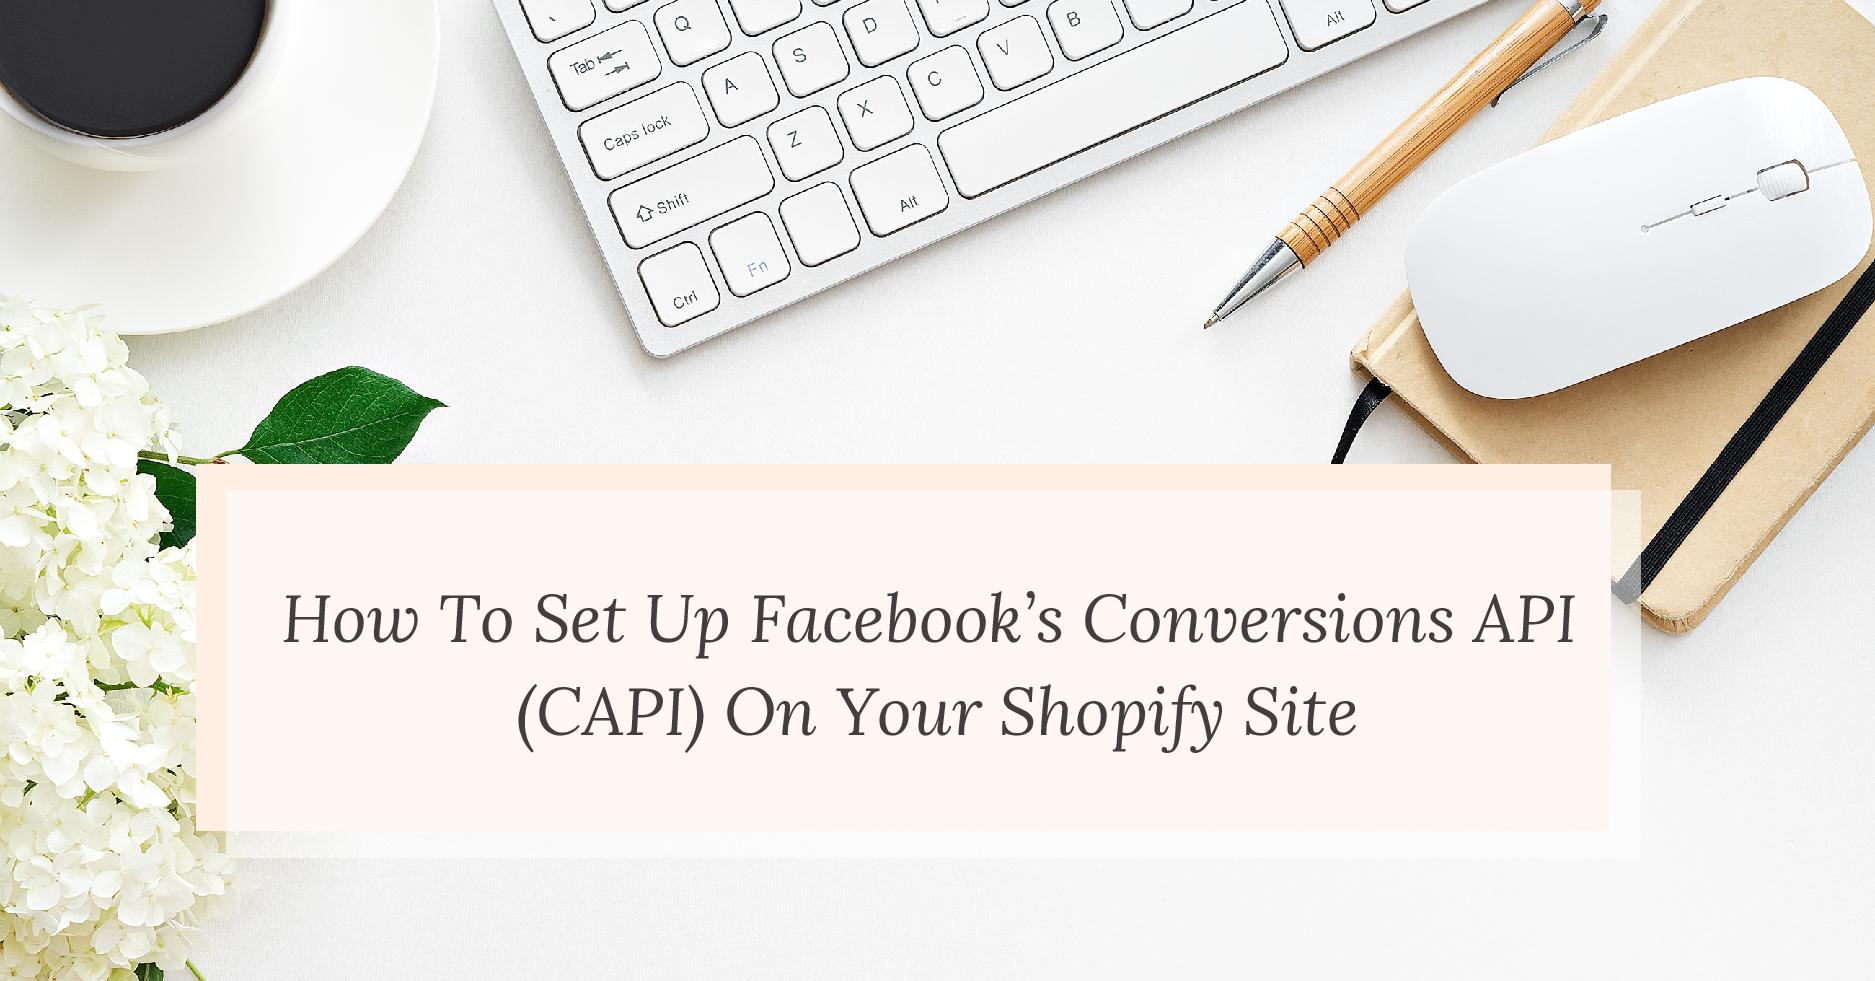 How To Set Up Facebook's Conversions API (CAPI) On Your Shopify Site